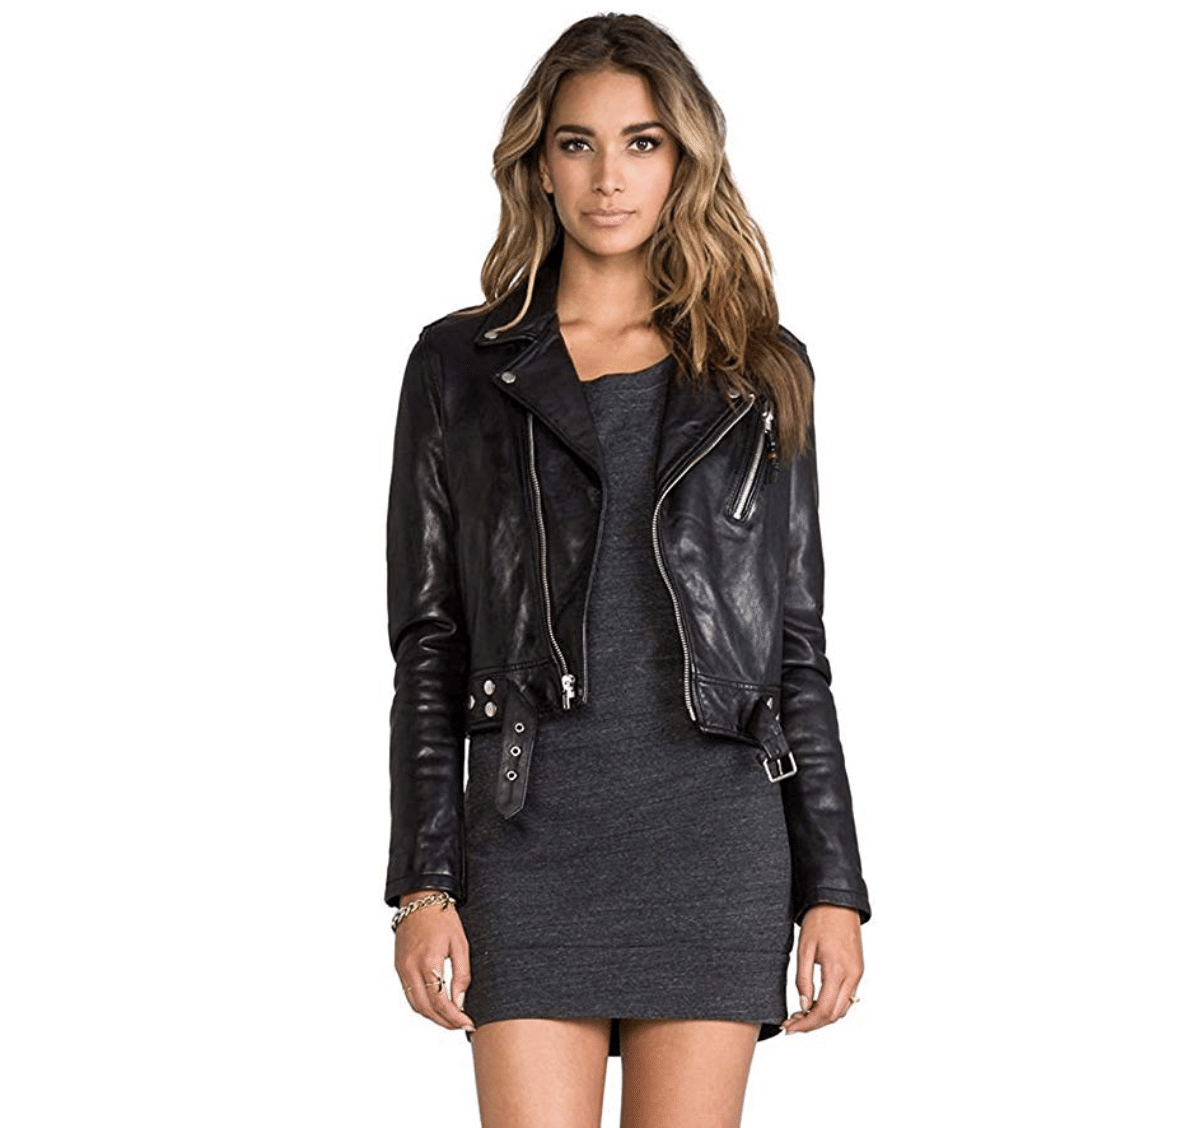 leather-anniversary-gifts-for-her-jacket